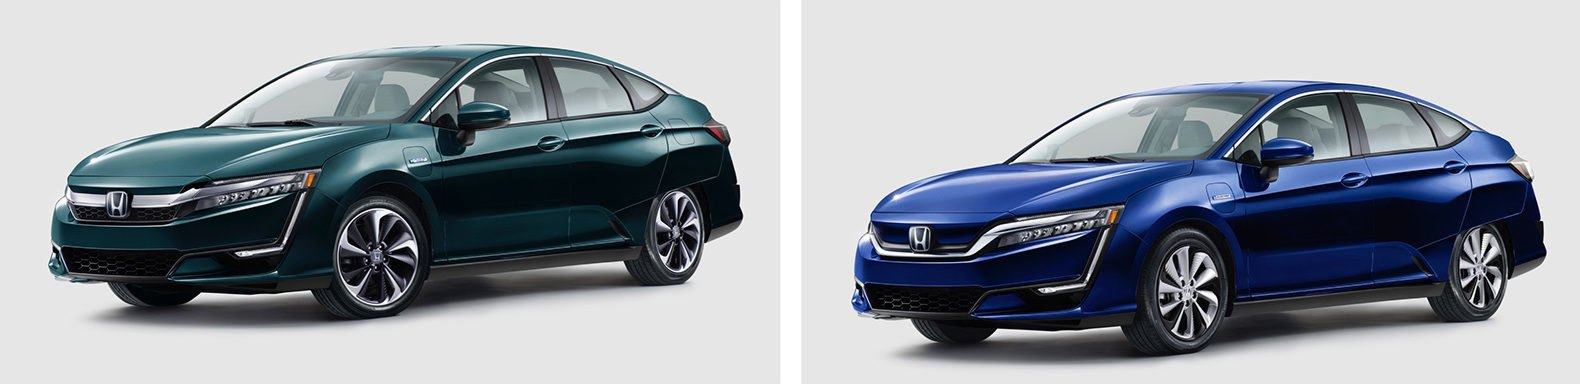 honda introduces clarity electric and clarity plug in hybrid models. Black Bedroom Furniture Sets. Home Design Ideas